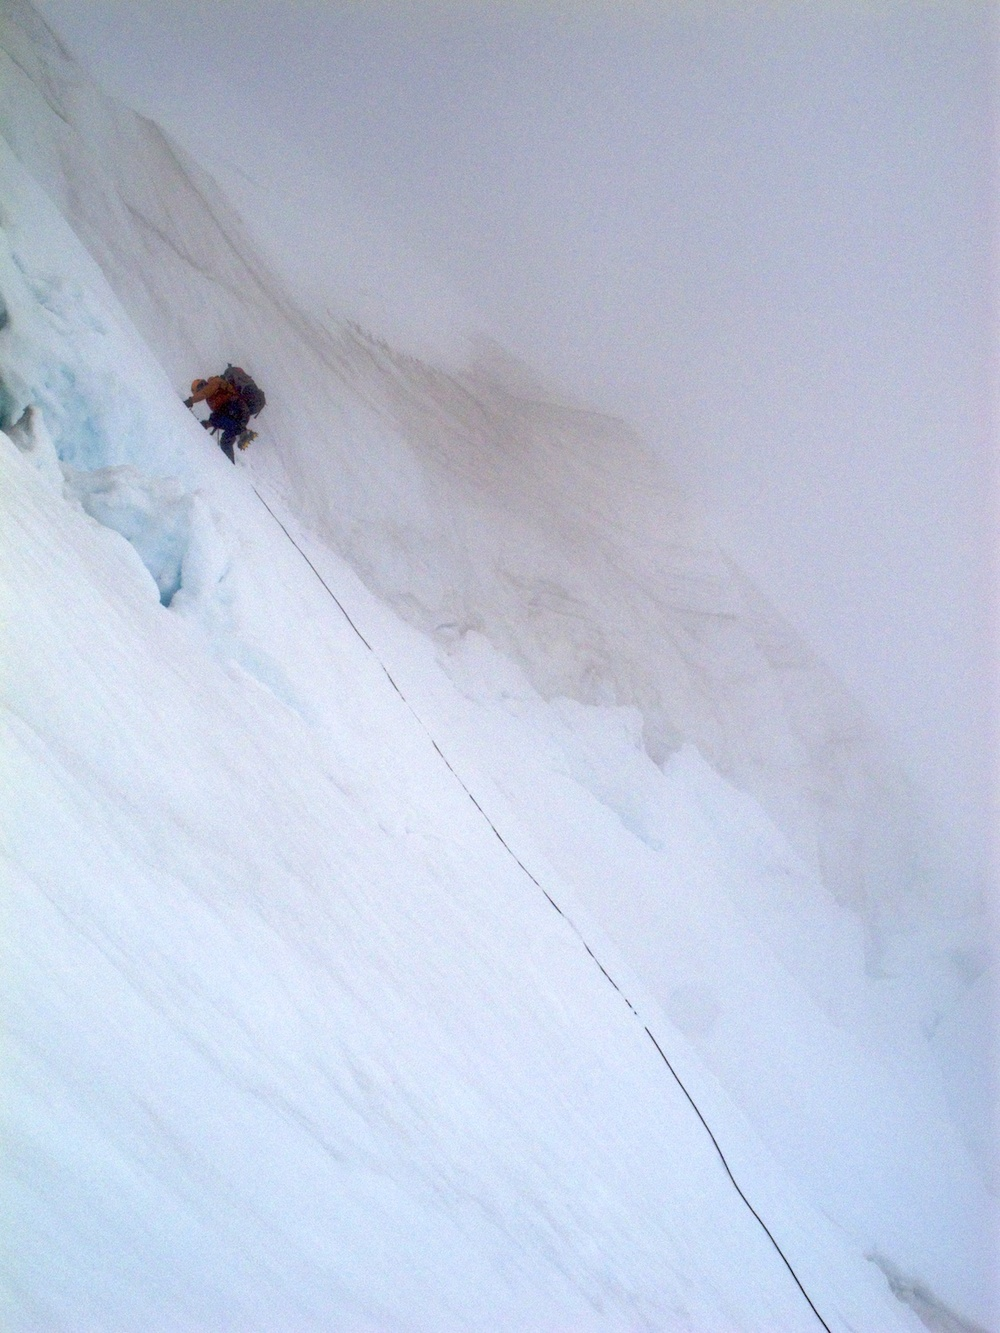 White-out conditions on the traverse